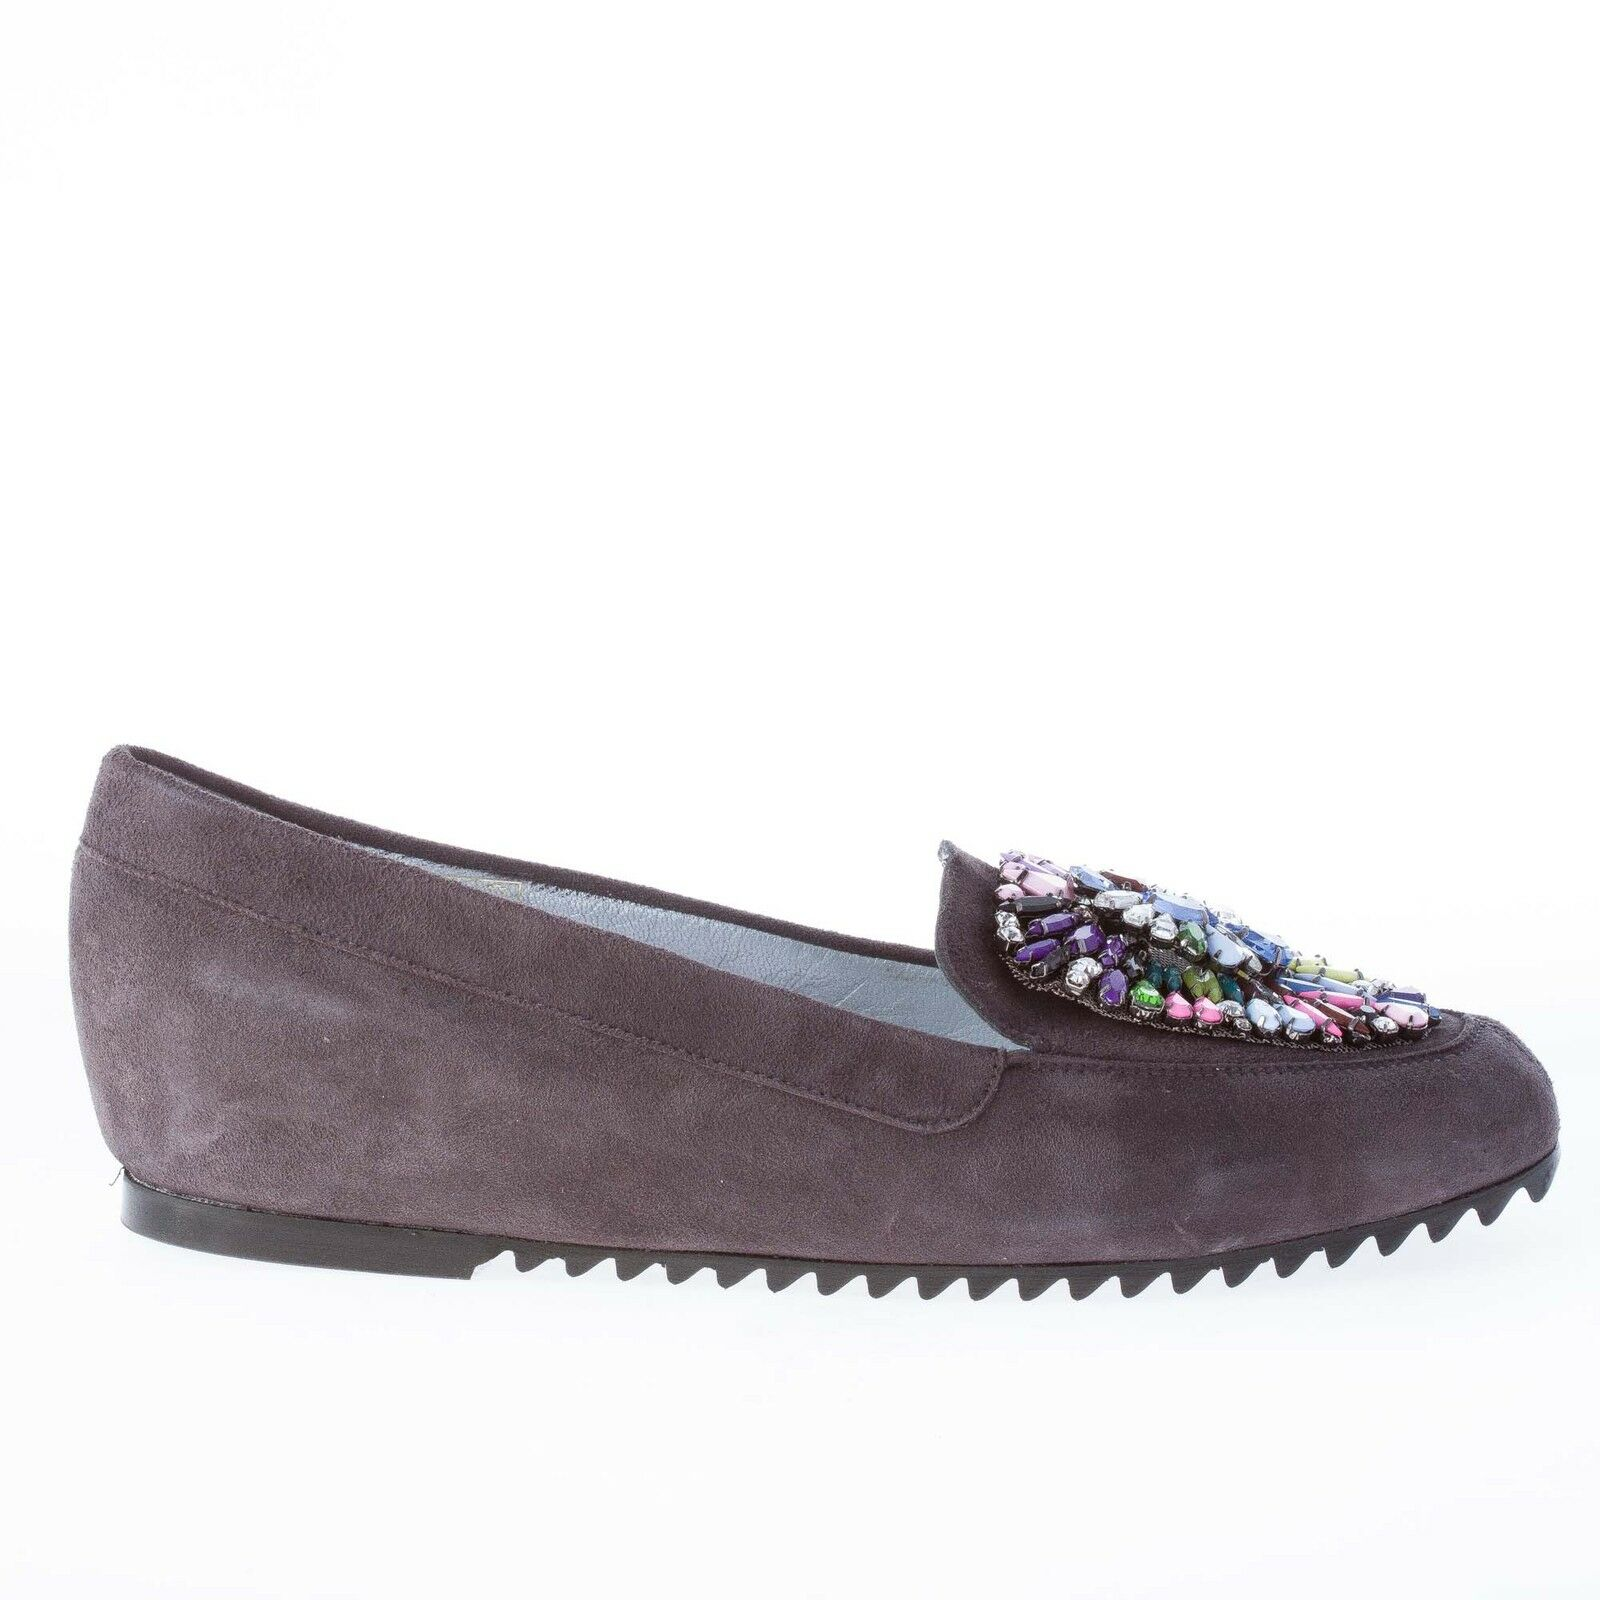 Azuree cannes Zapatos señora mujer gris loafer loafer loafer with Colorojo swarovsky and Stones  toma